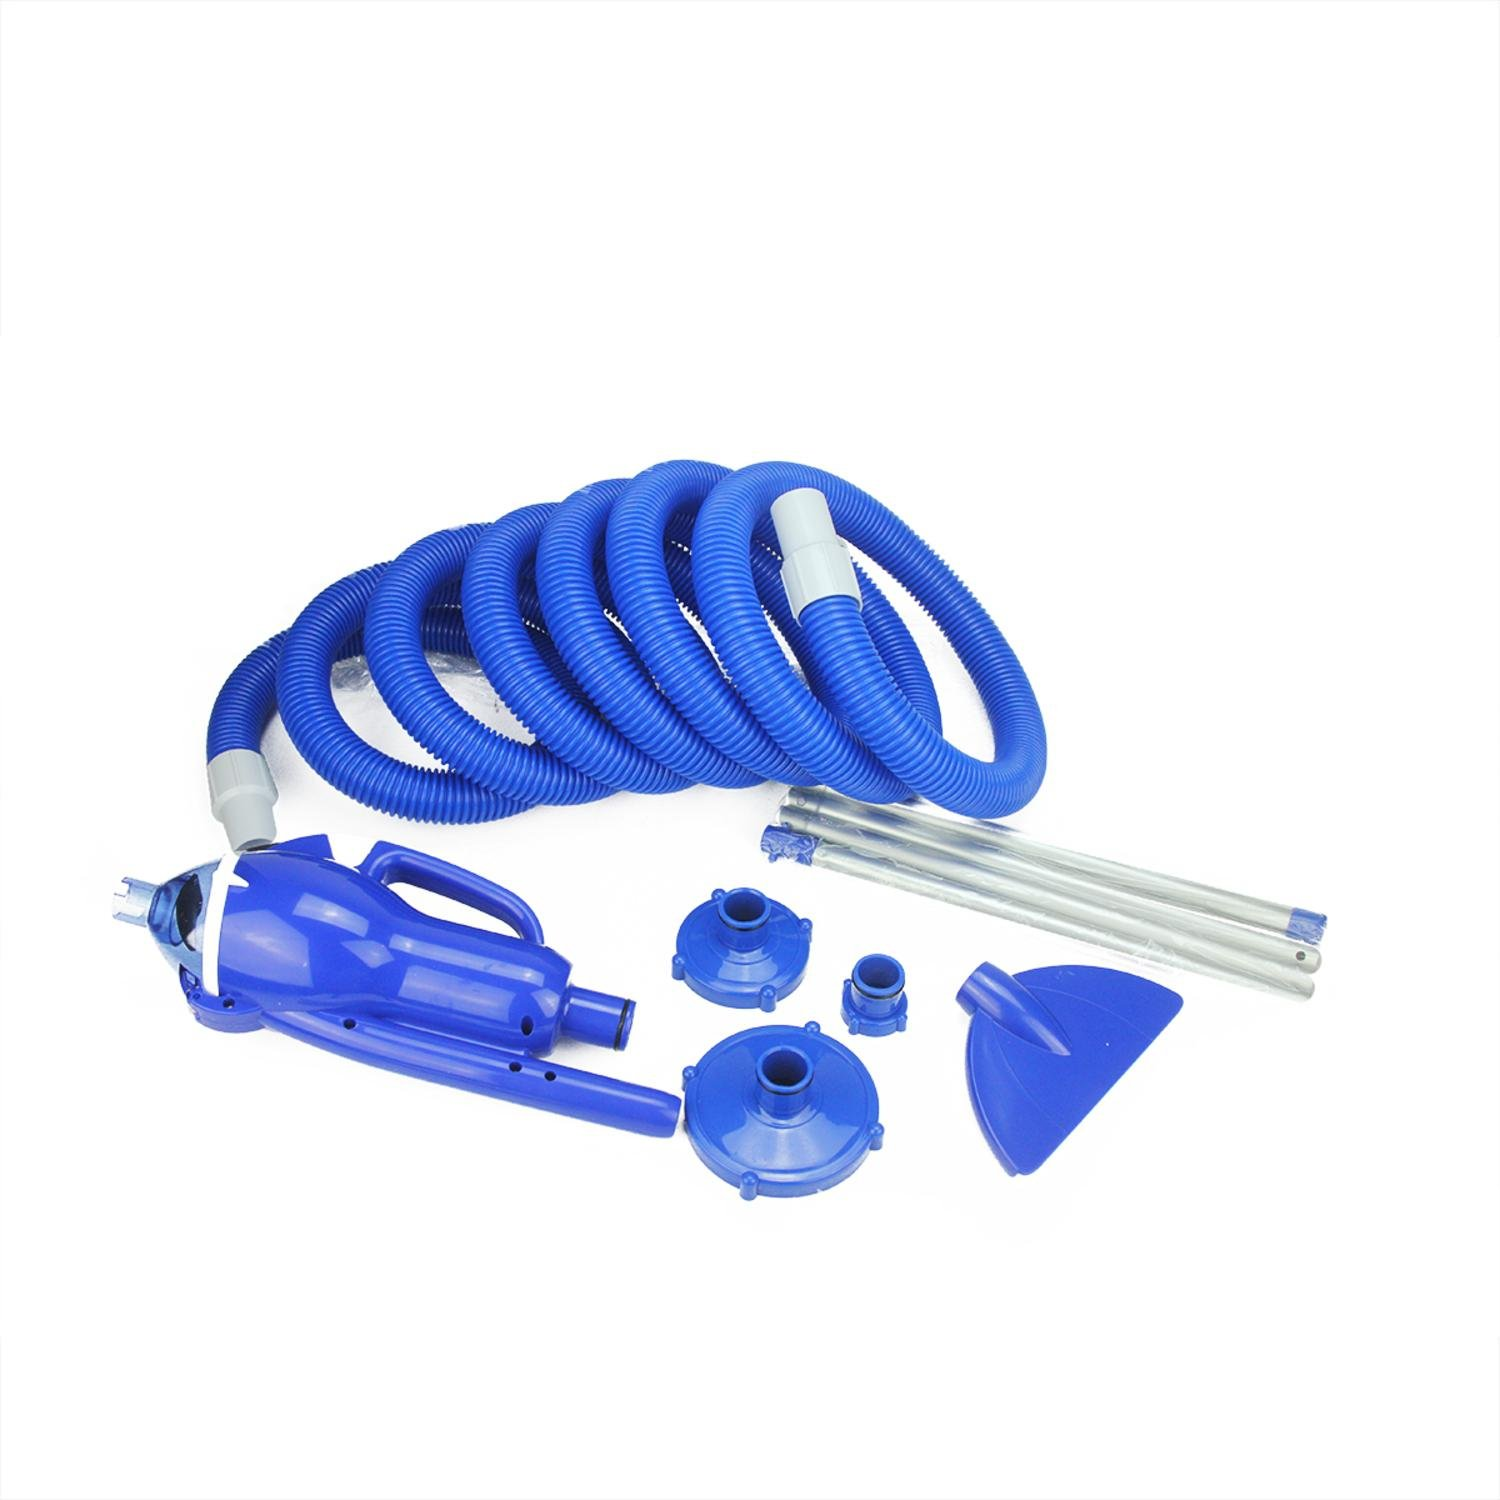 Blue and White EZ Pool Vacuum System for Inflatable, Framed and Above Ground Pools by Pool Central (Image #2)